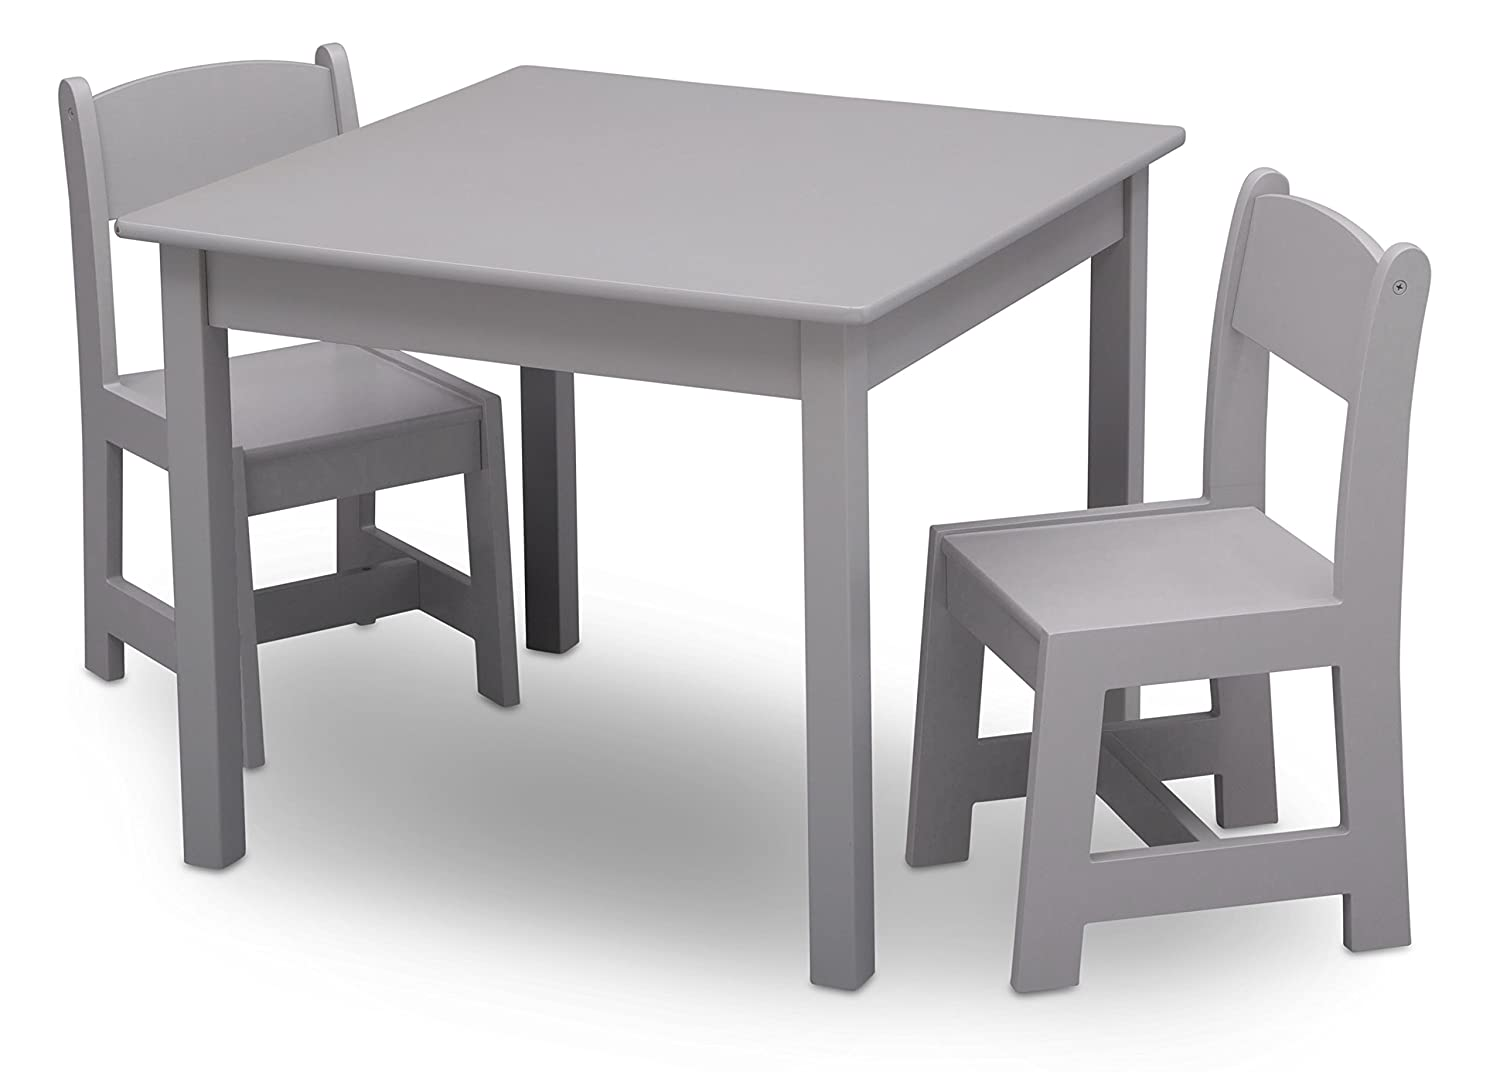 Children Sturdy Wood Chair Set and Table (2 Chairs Included), Grey